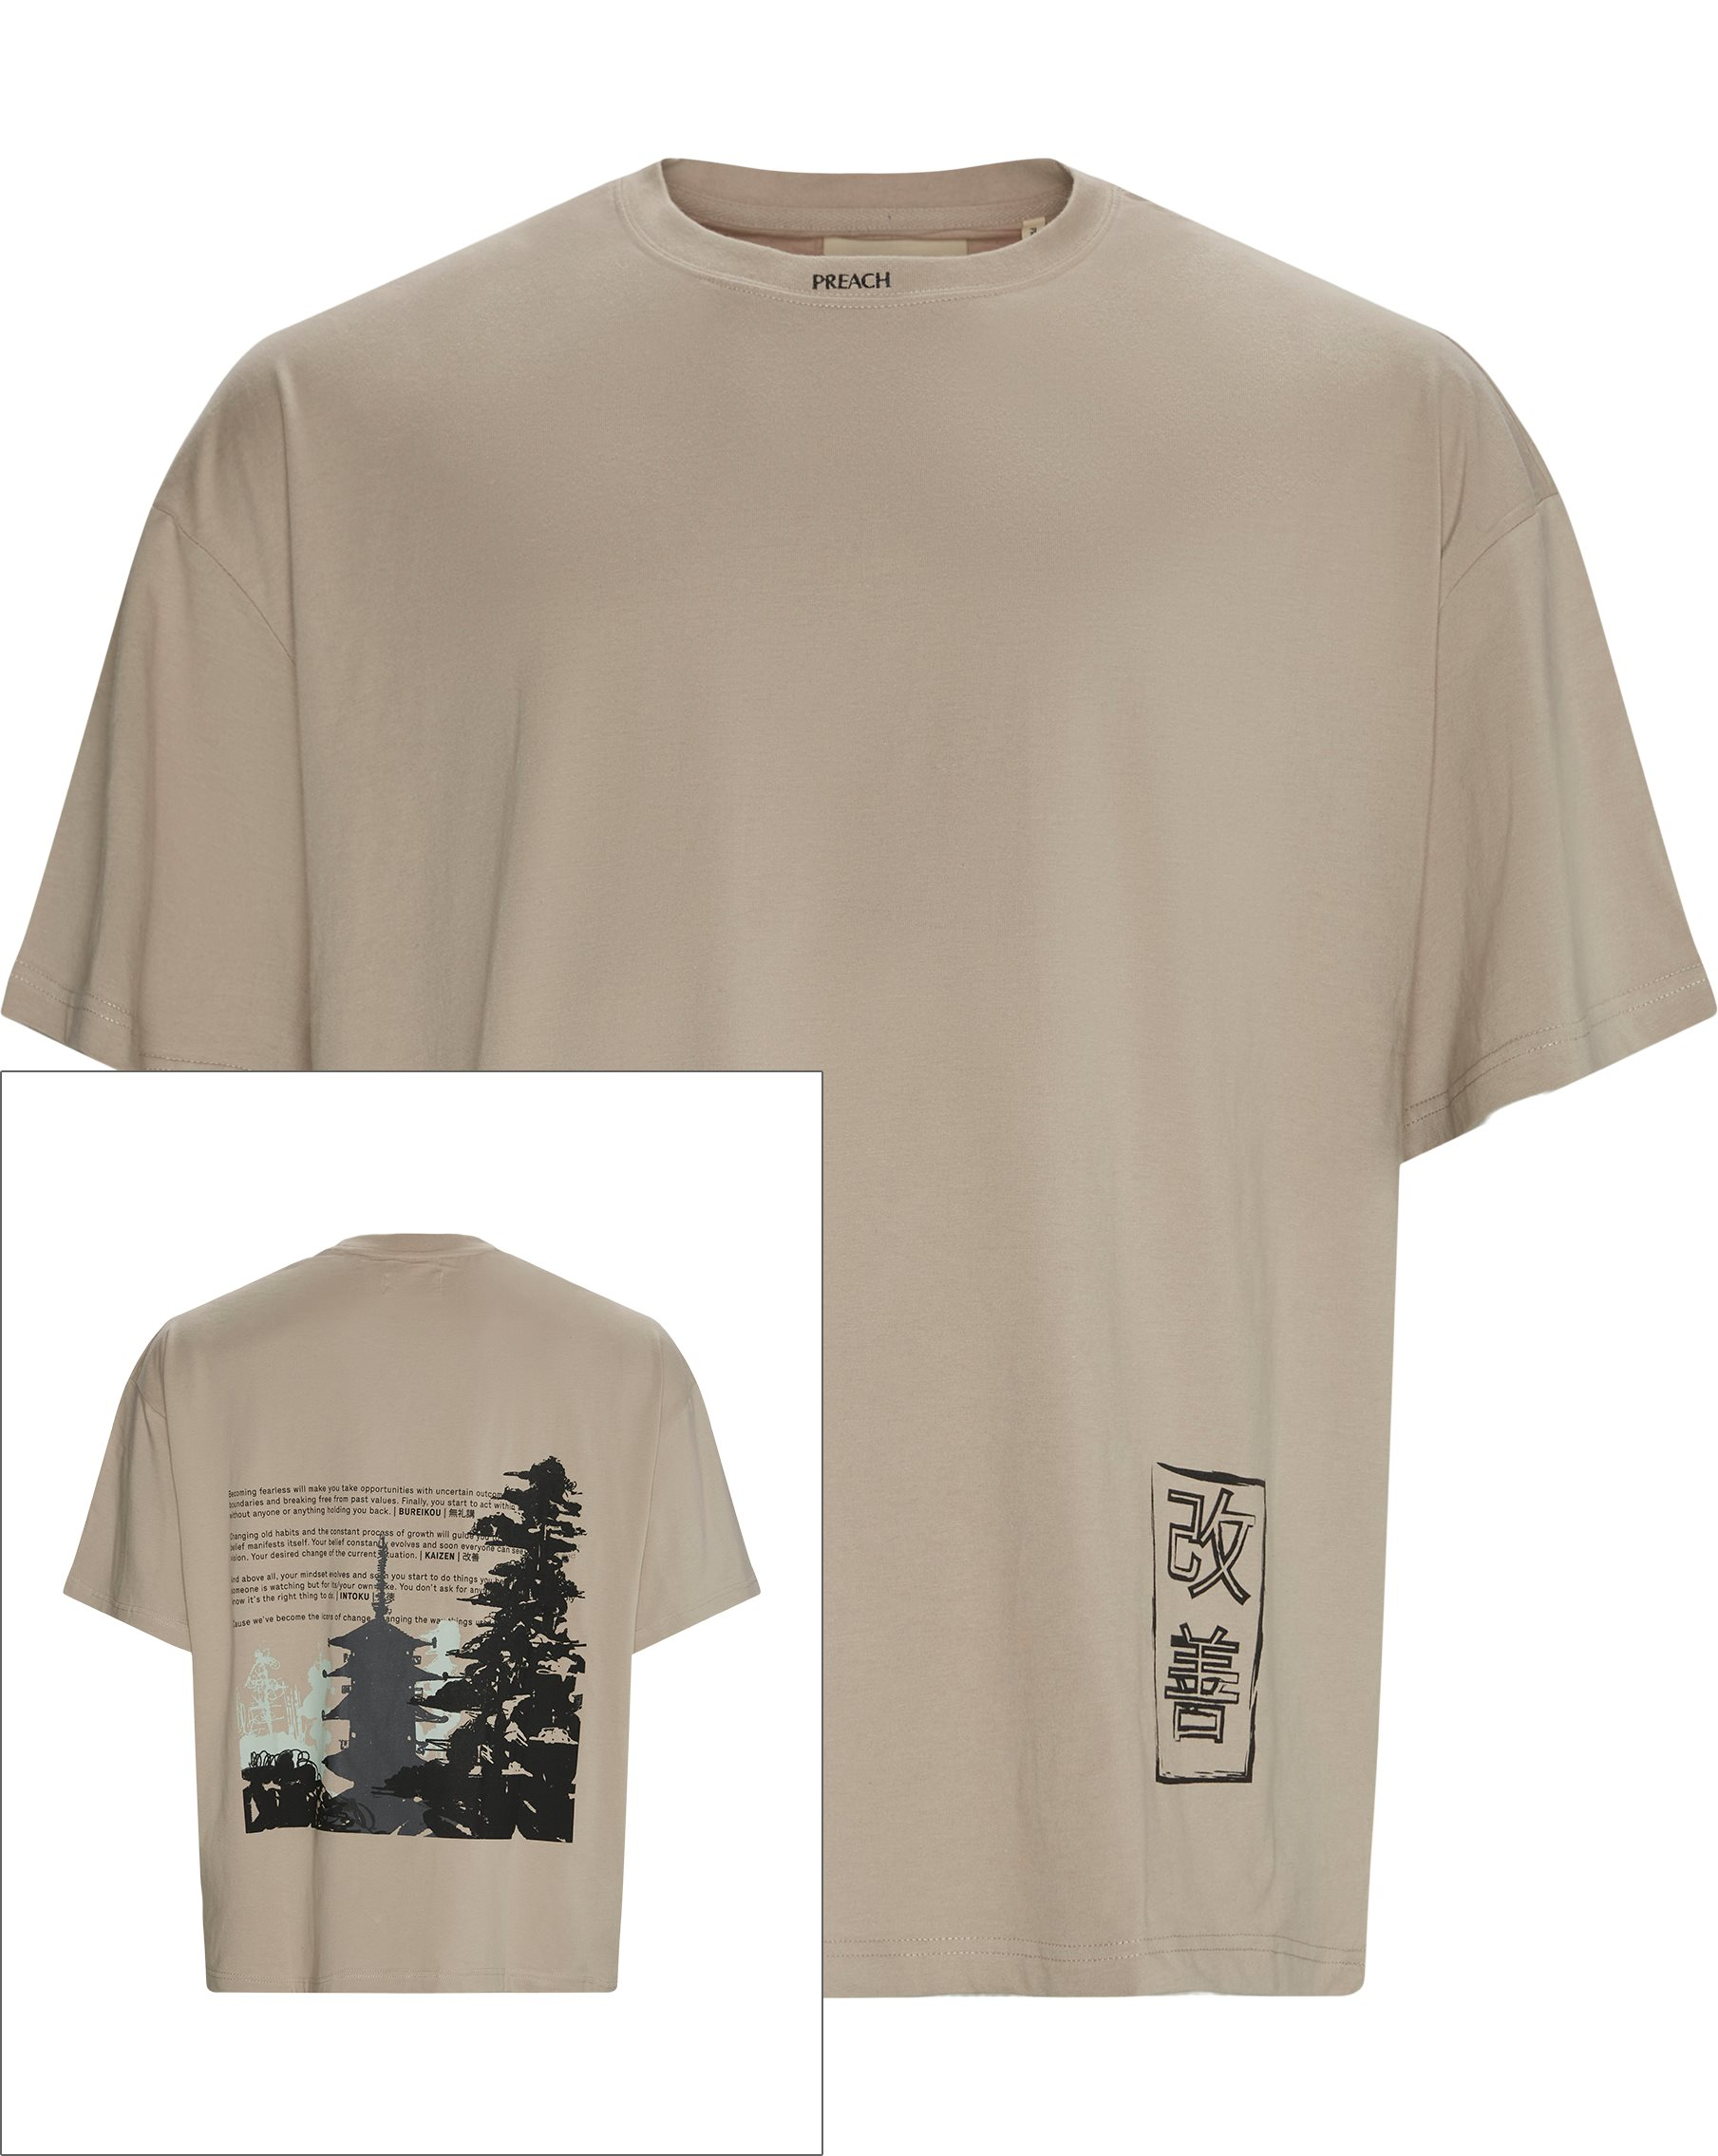 Old Temple Tee - T-shirts - Oversized - Sand